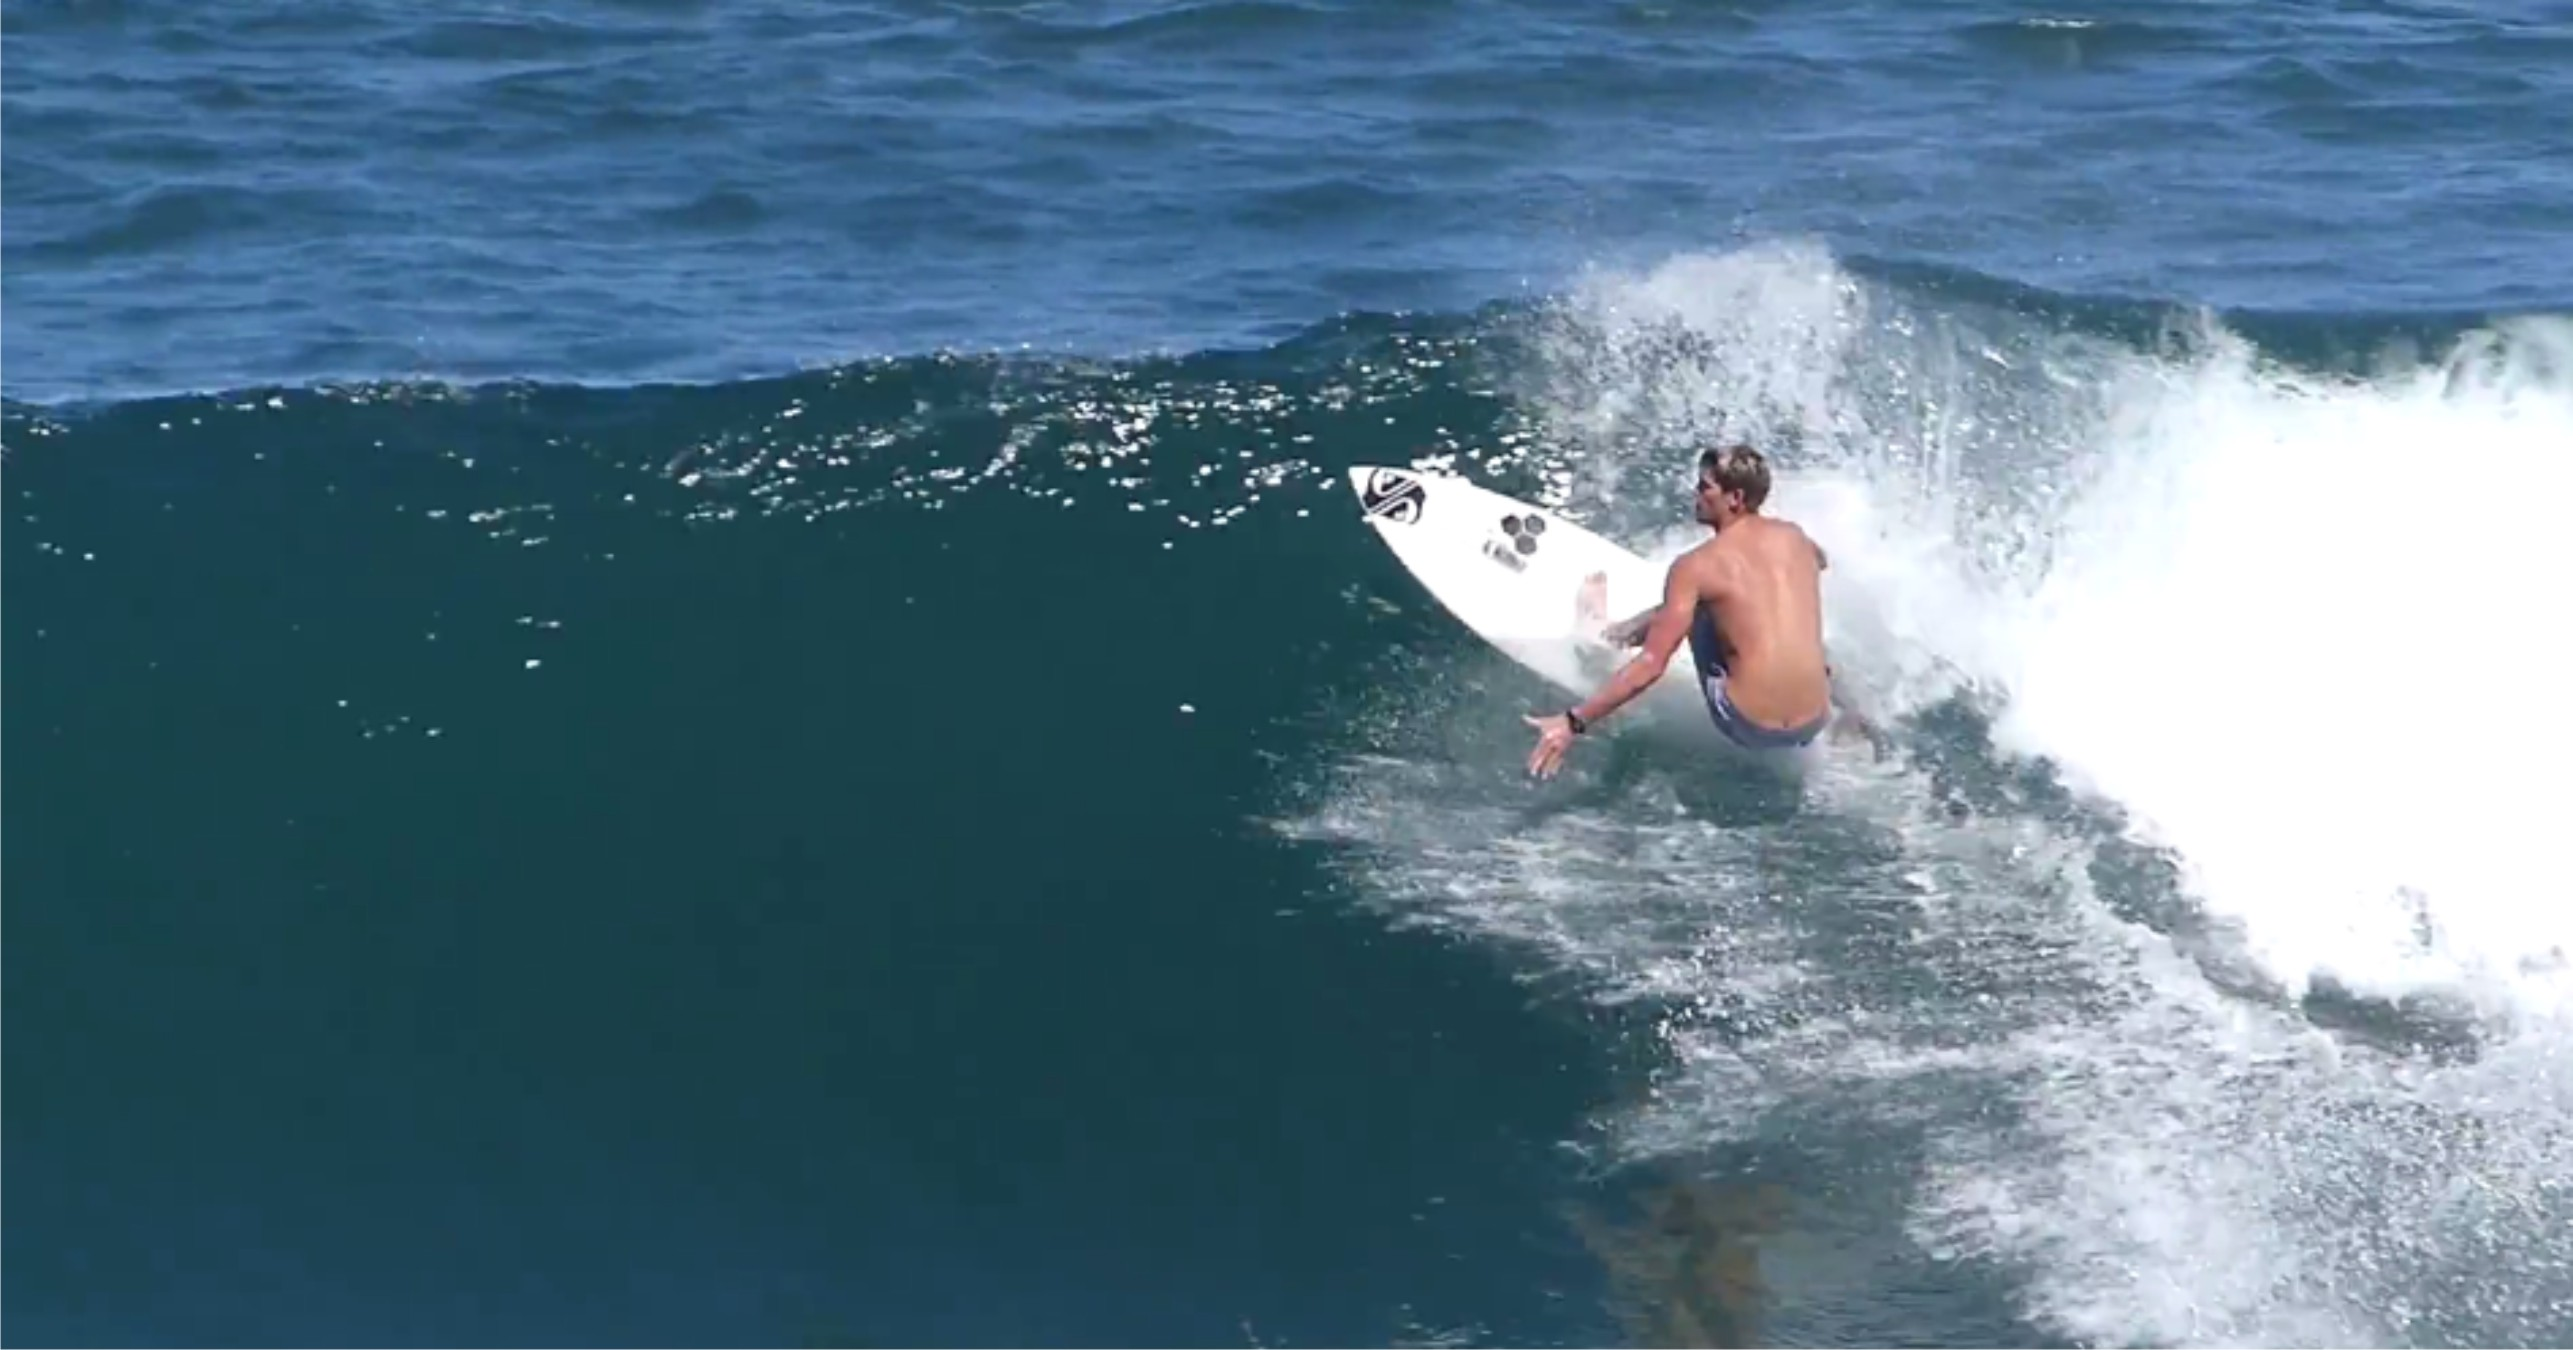 Watch the awesome Slade Prestwich Just Surfing video here